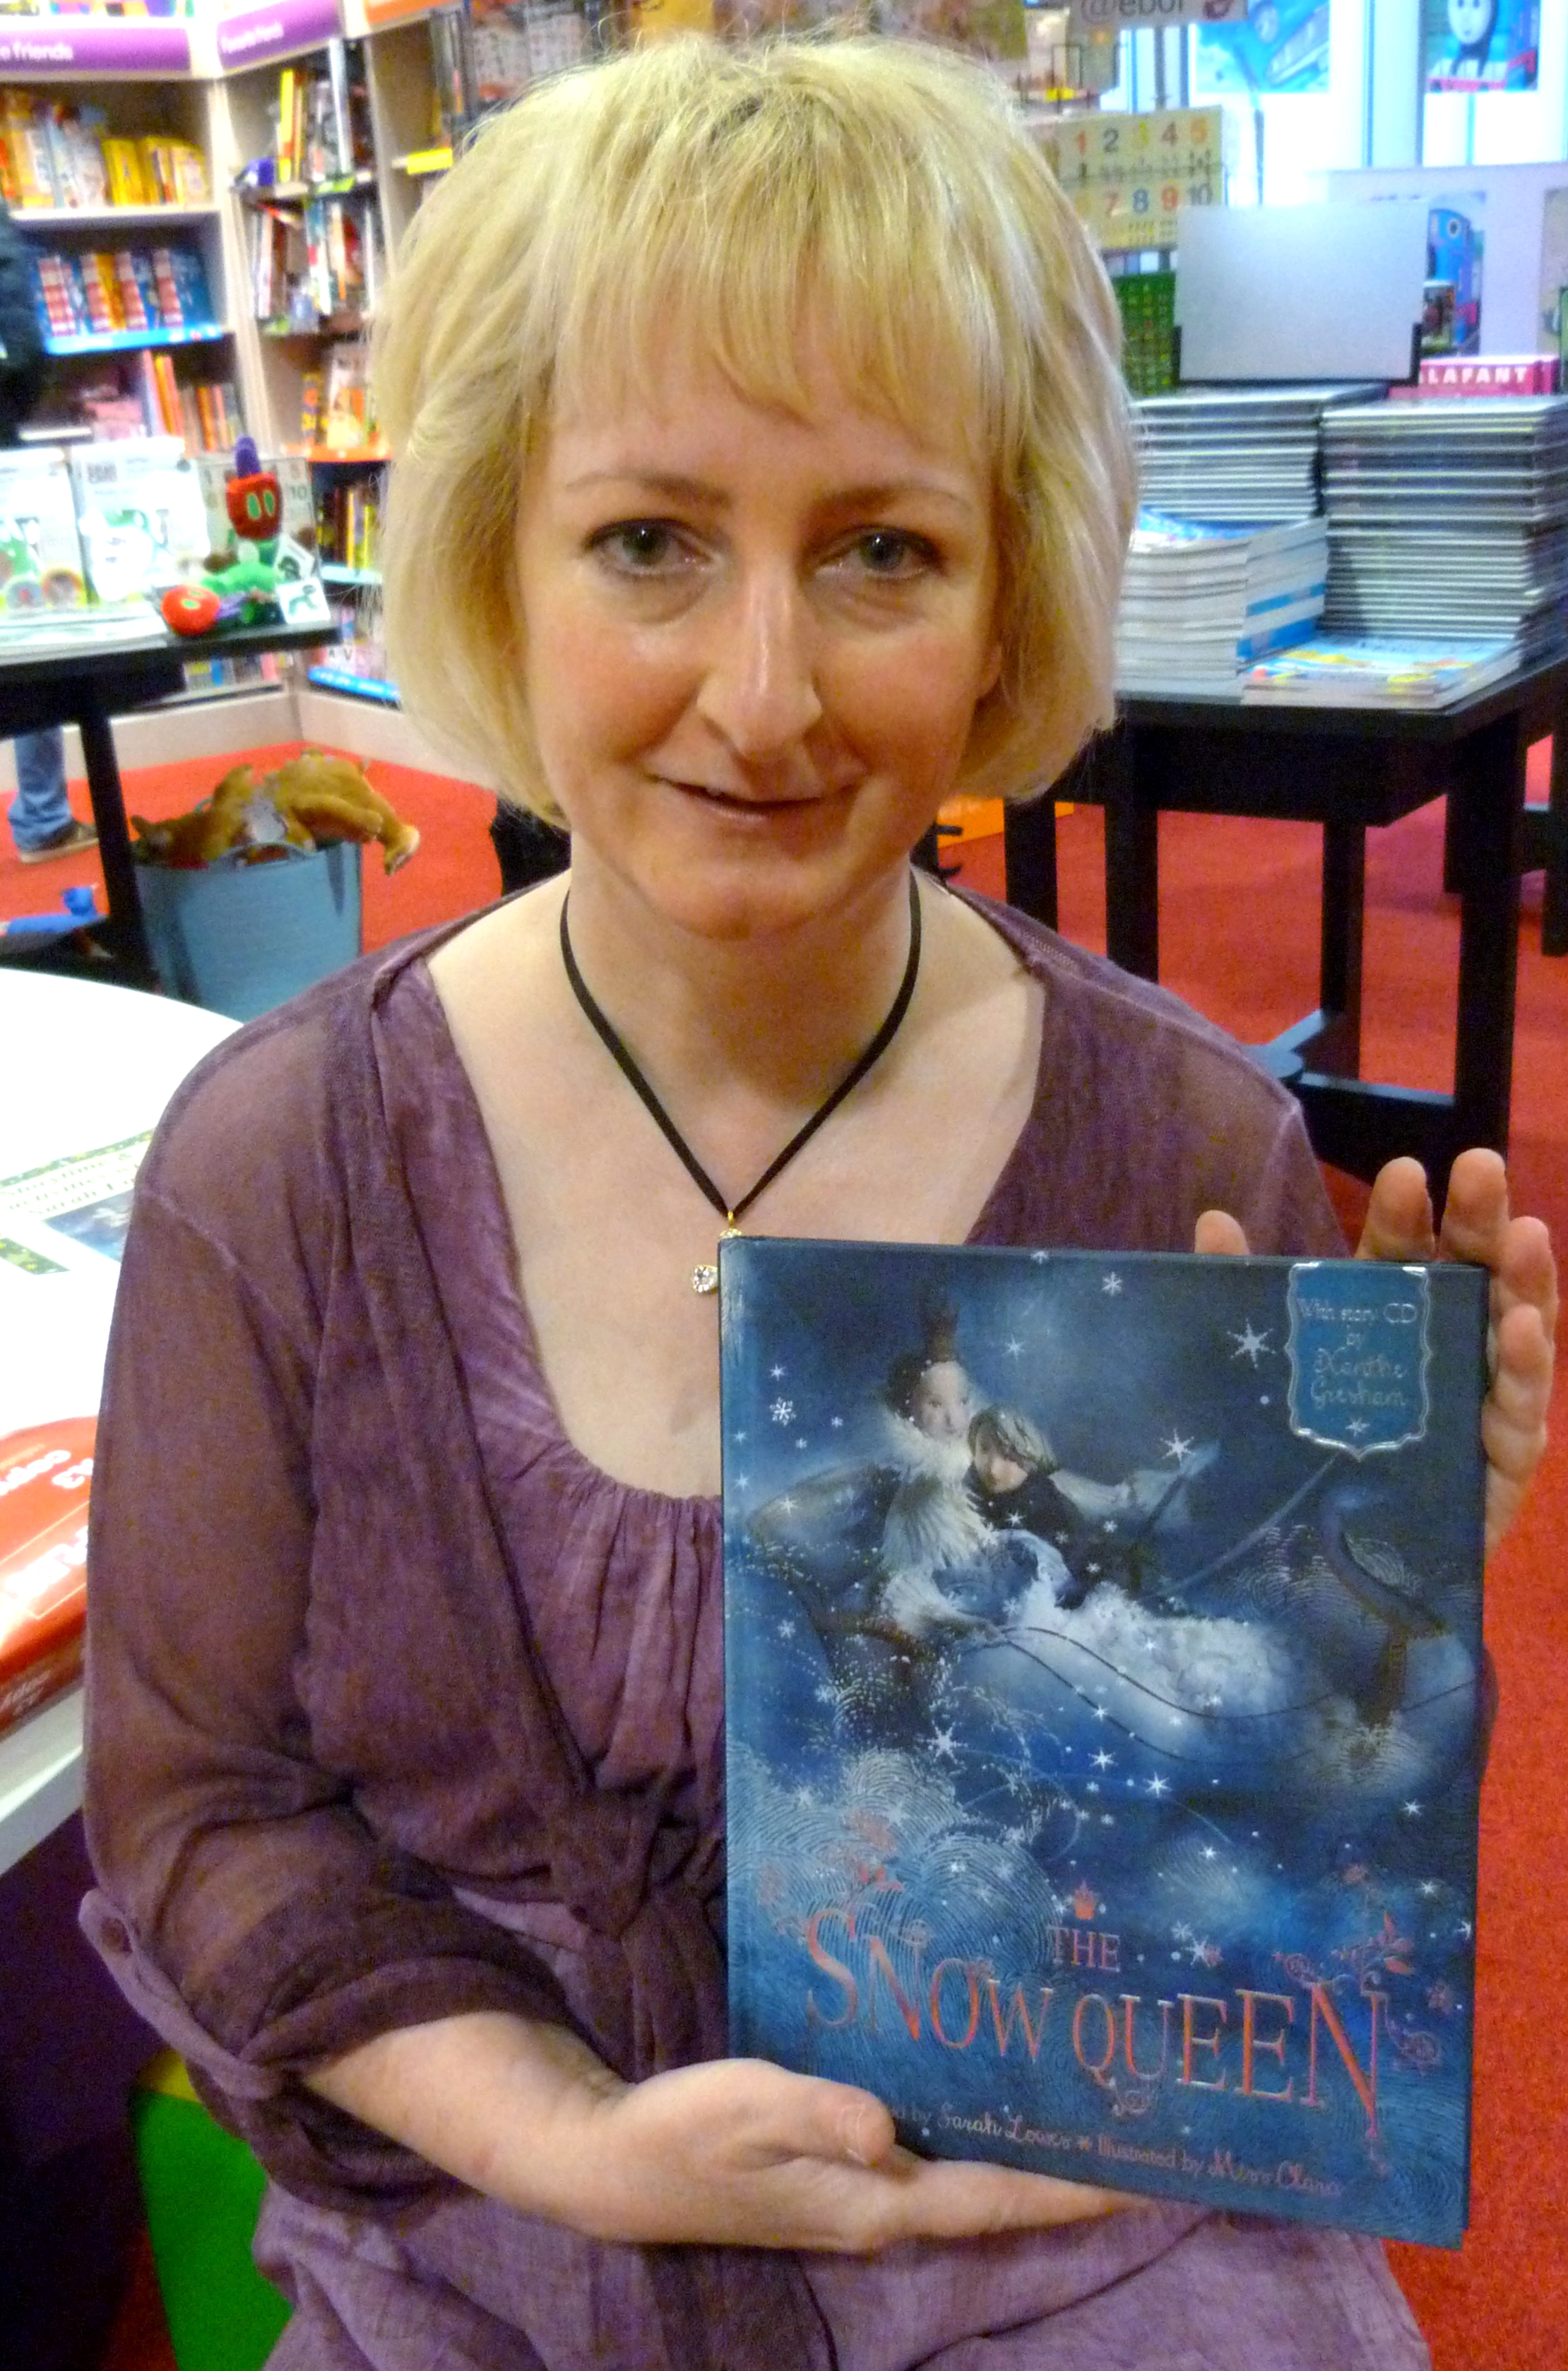 """Sarah Lowes has retold the story of """"The Snow Queen"""". This is her book launch at Waterstones in Liverpool One"""